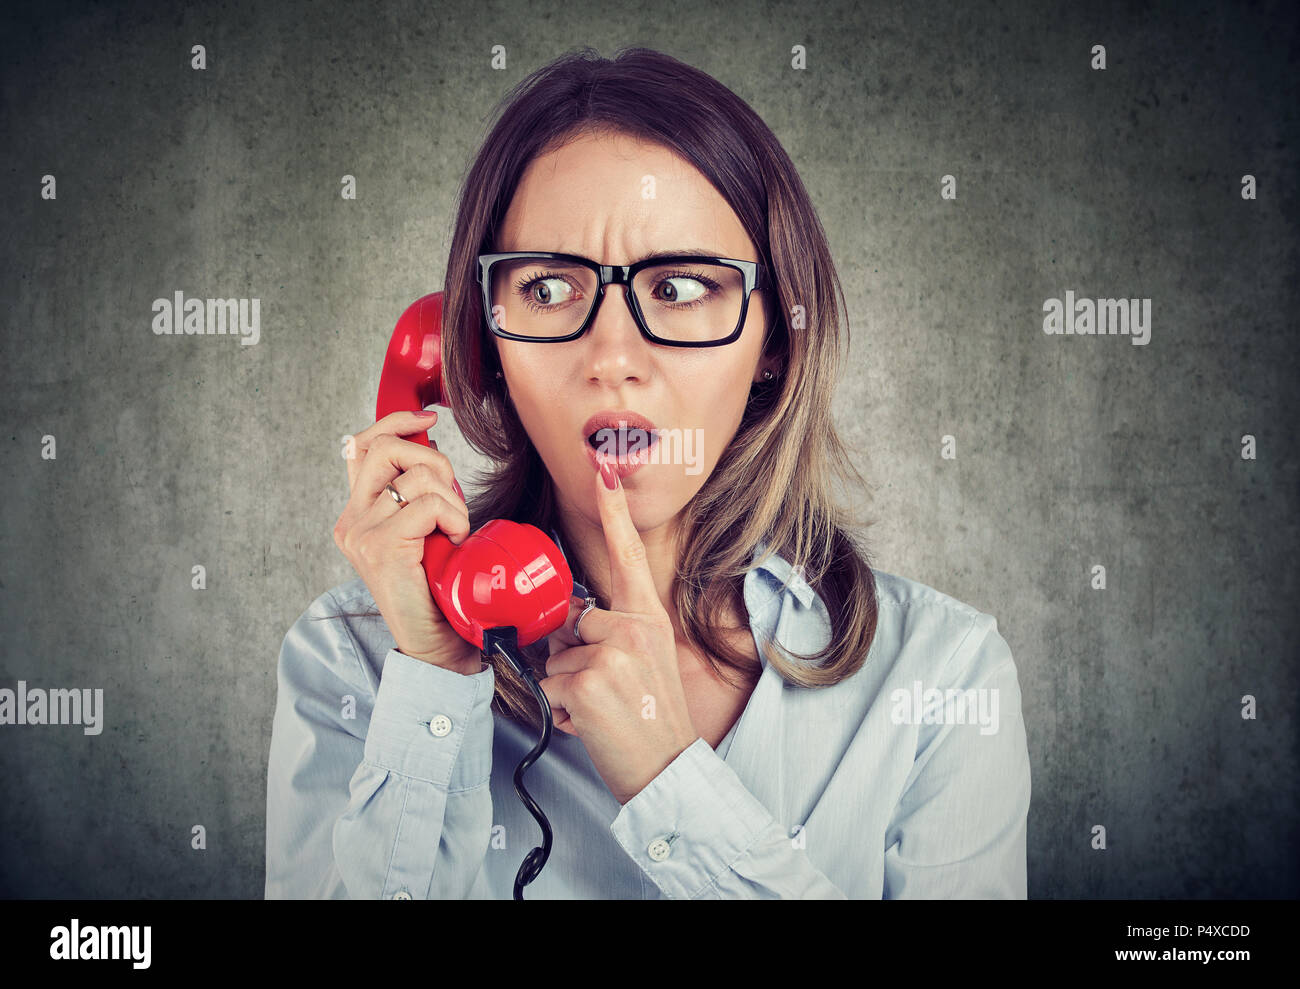 Worried young woman on the phone - Stock Image